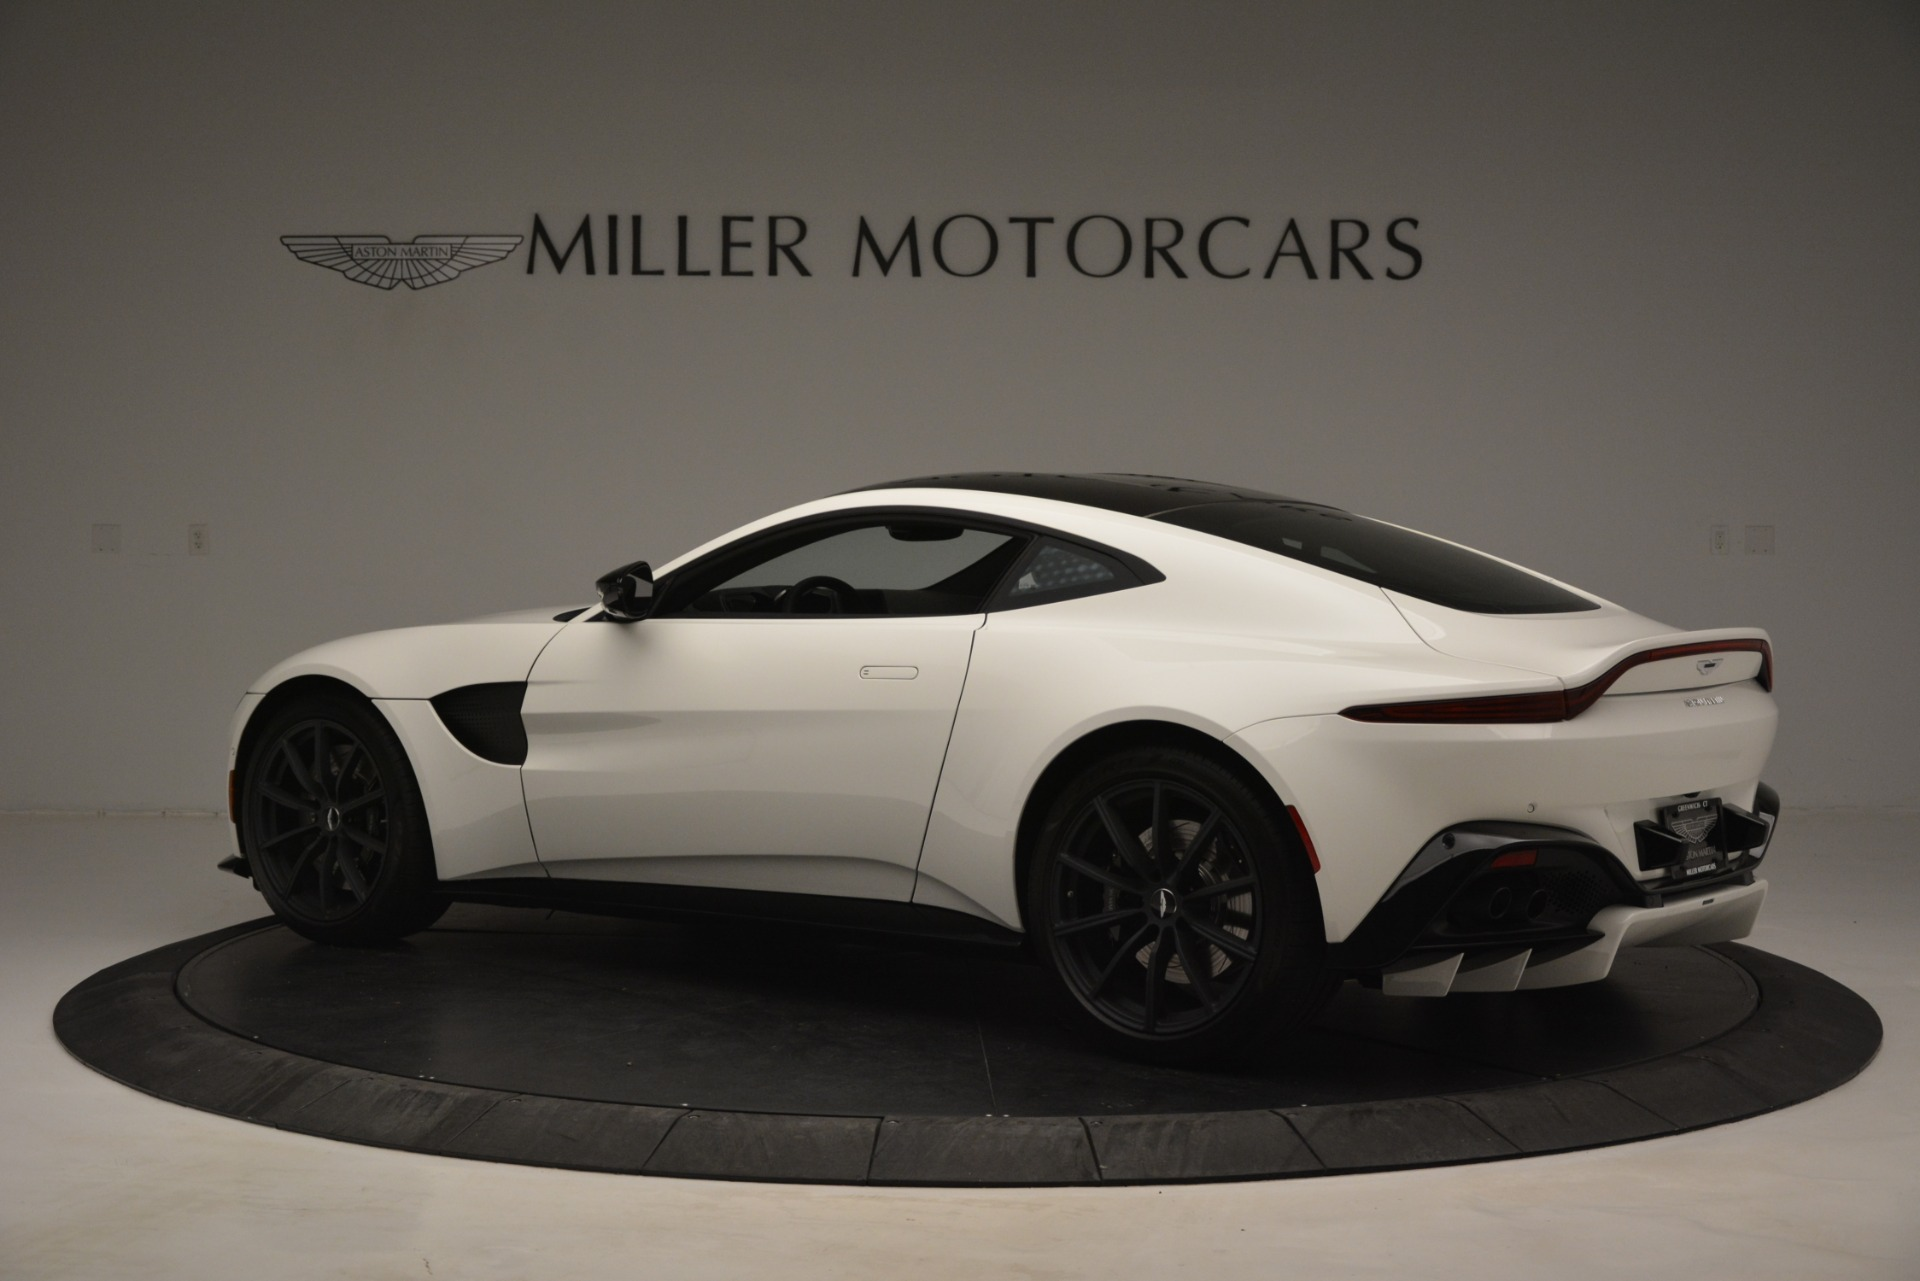 New 2019 Aston Martin Vantage V8 For Sale In Westport, CT 3053_p4